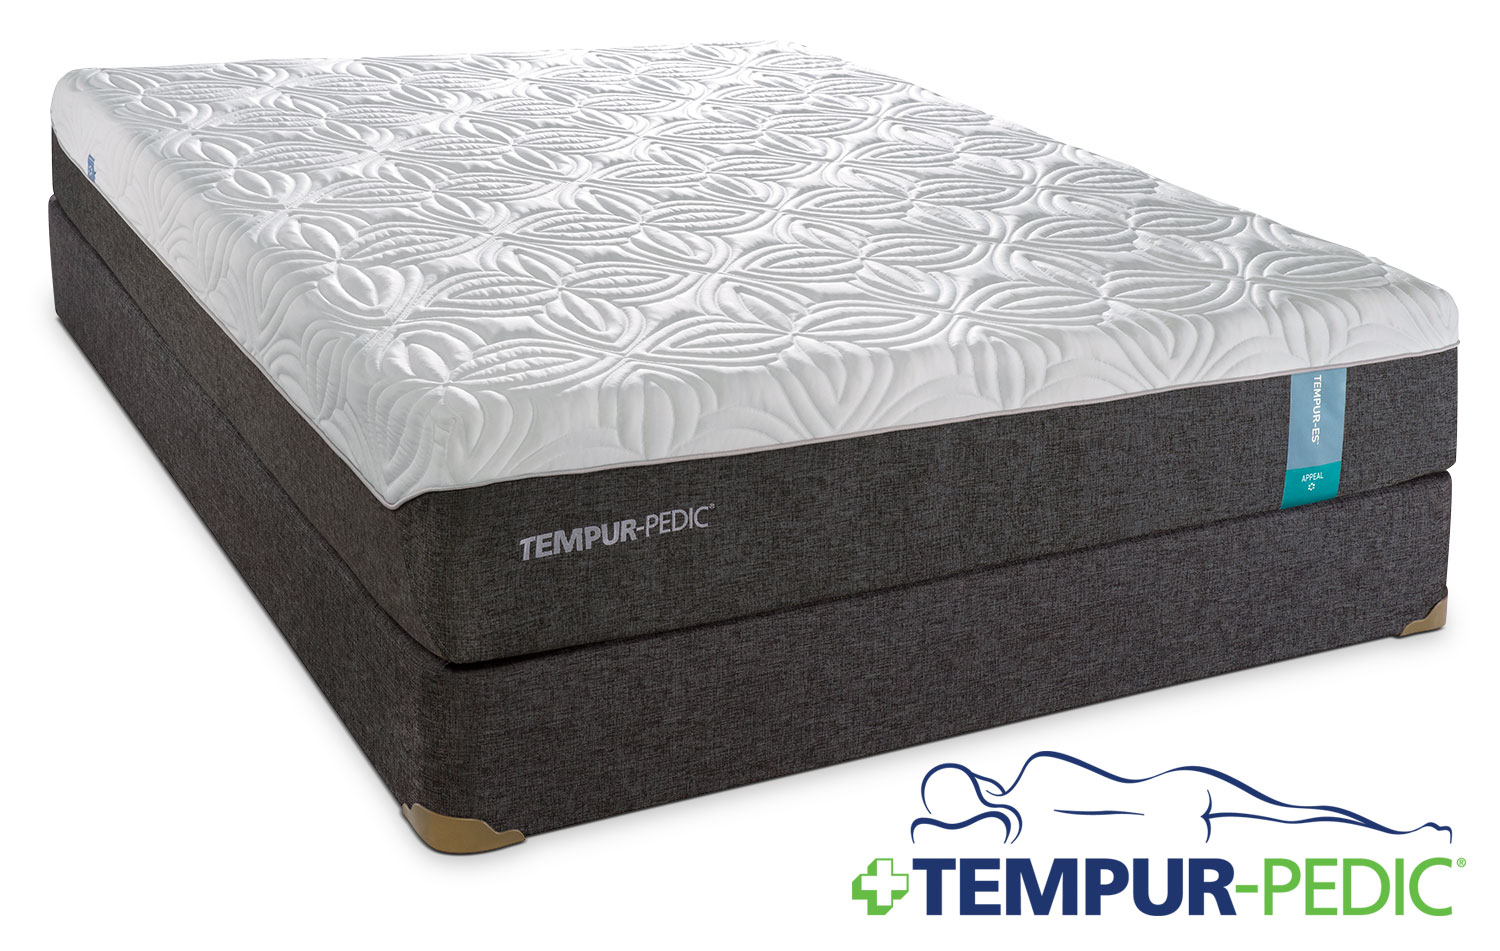 Mattresses and Bedding - Tempur-Pedic Appeal Twin Mattress/Boxspring Set